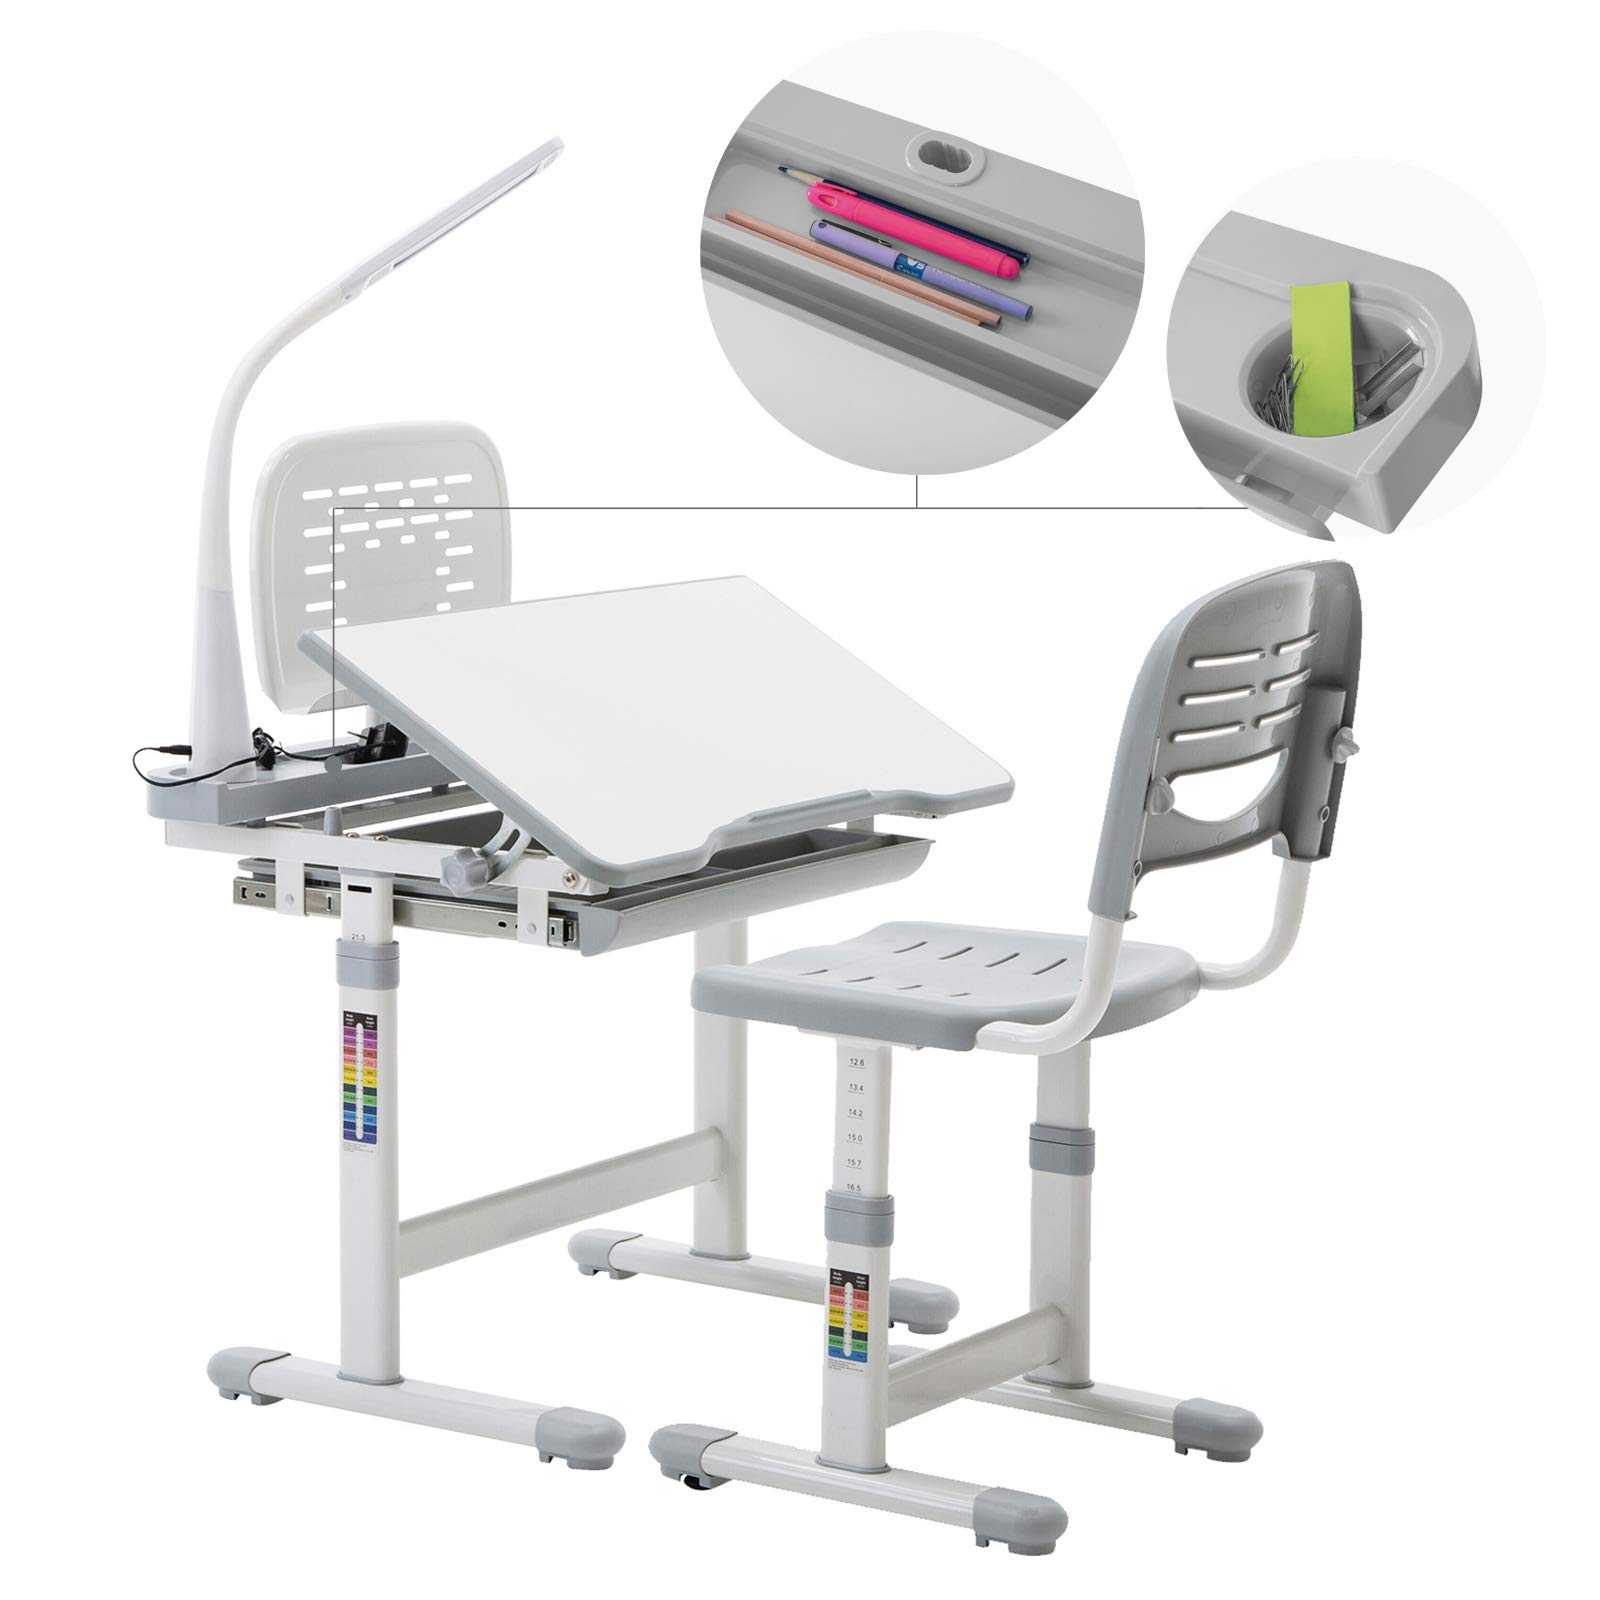 Mecor Kids Desks,Children Desk and Chair Set Height Adjustable,Childs School Student Sturdy Table w/Lamp Pull Out Drawer Storage,Pencil Case,Bookstand Grey